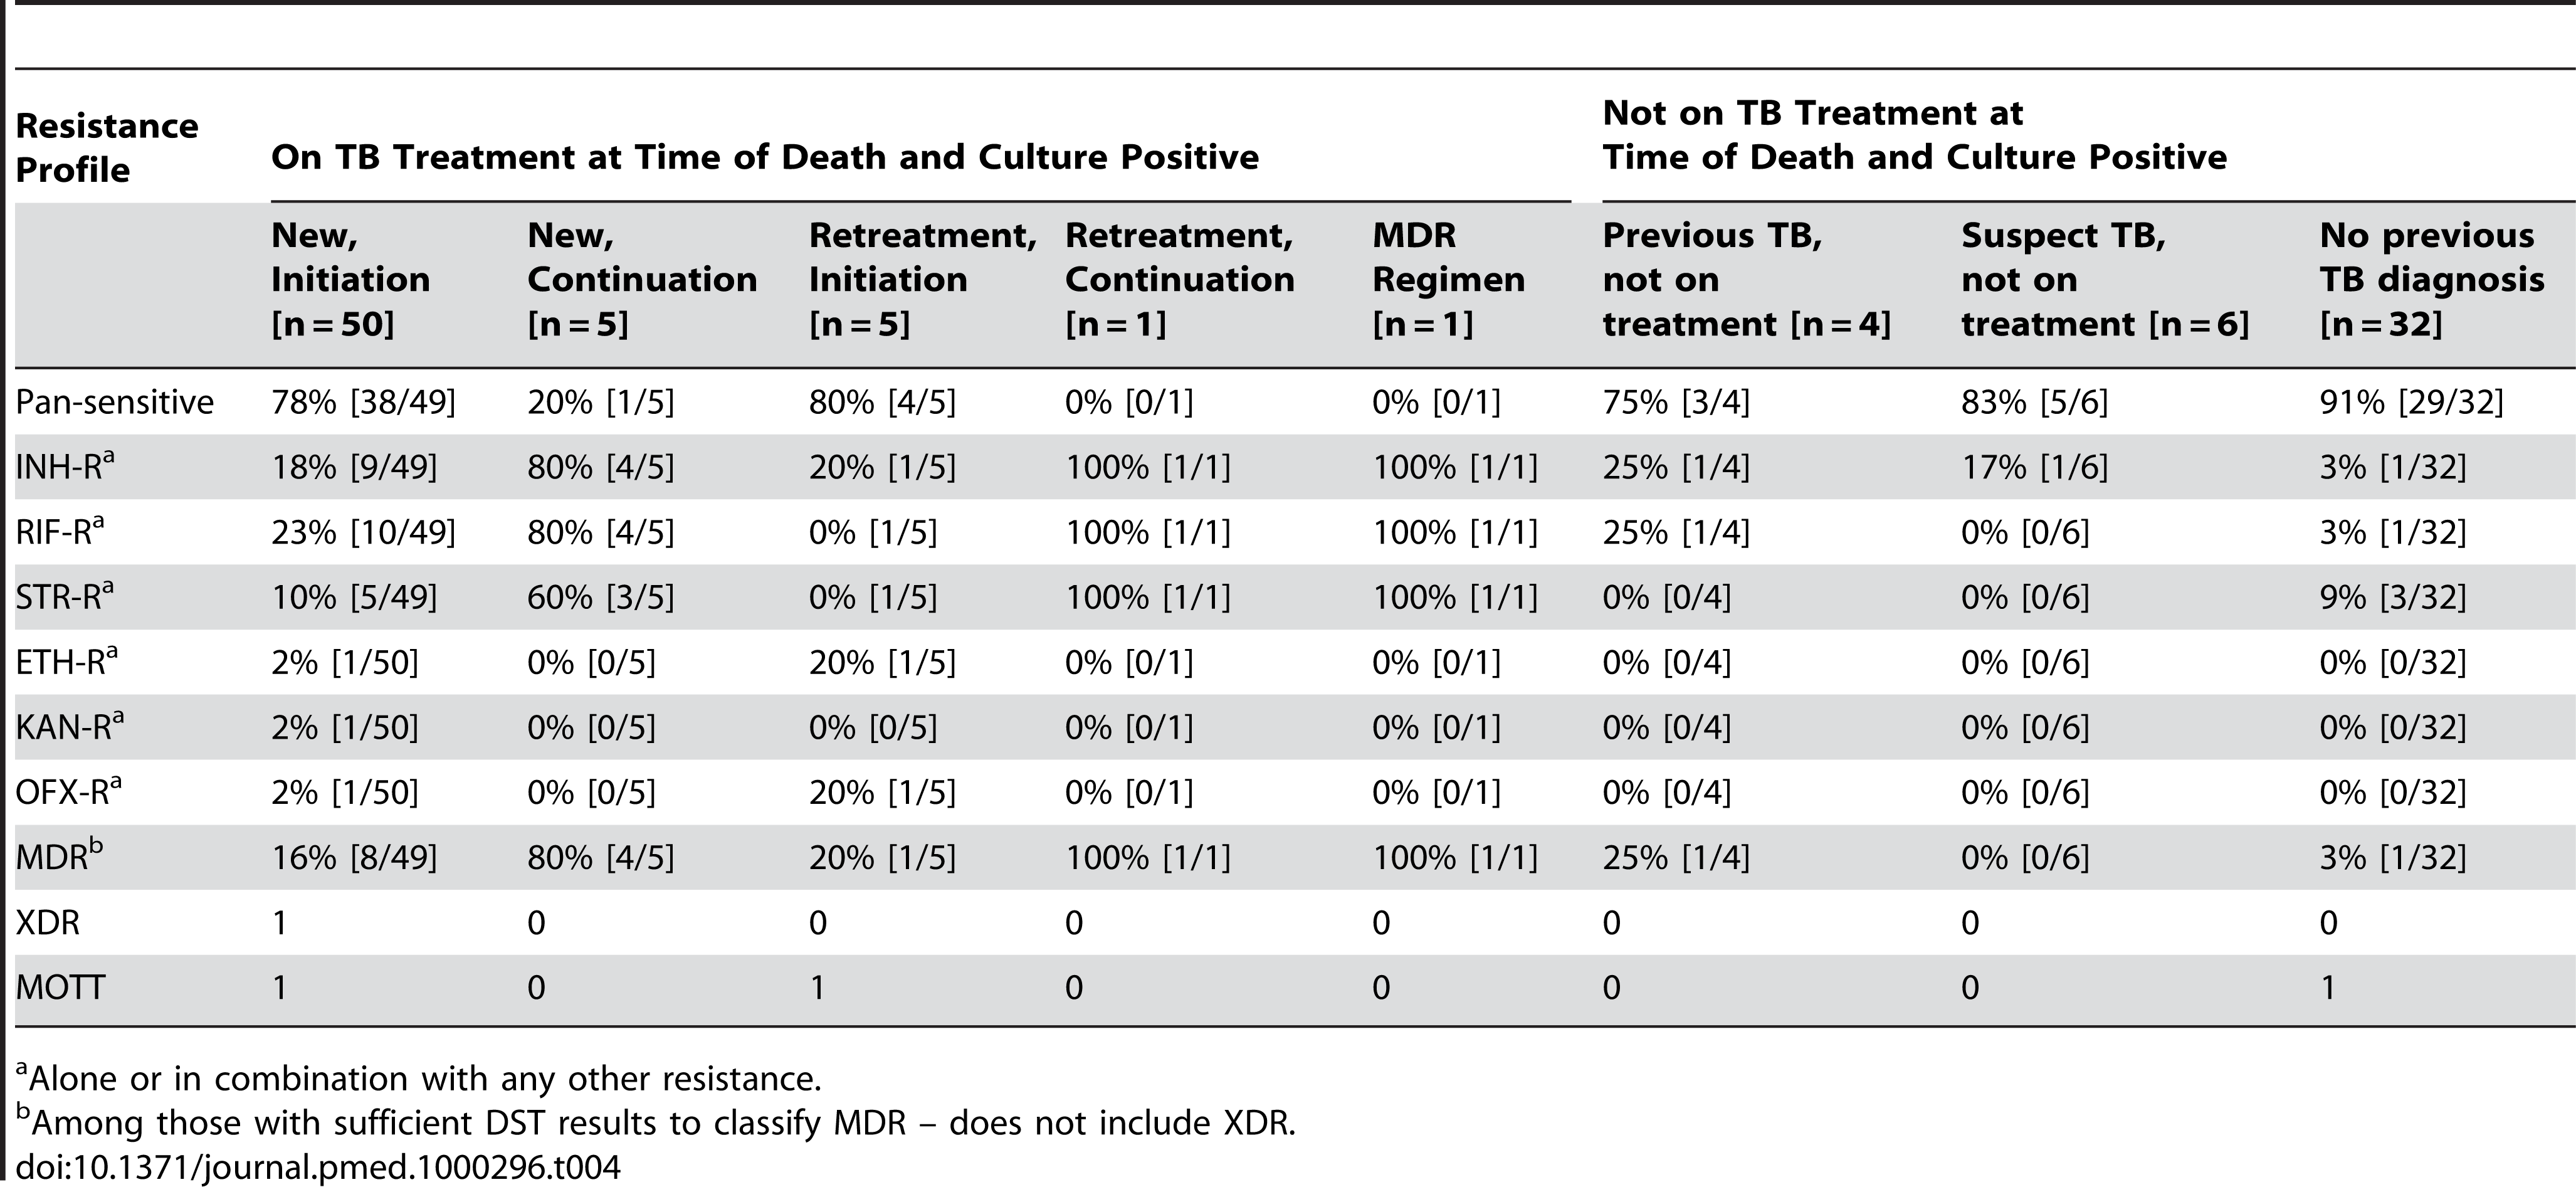 Resistance profiles for those with positive cultures, categorized by TB treatment status.